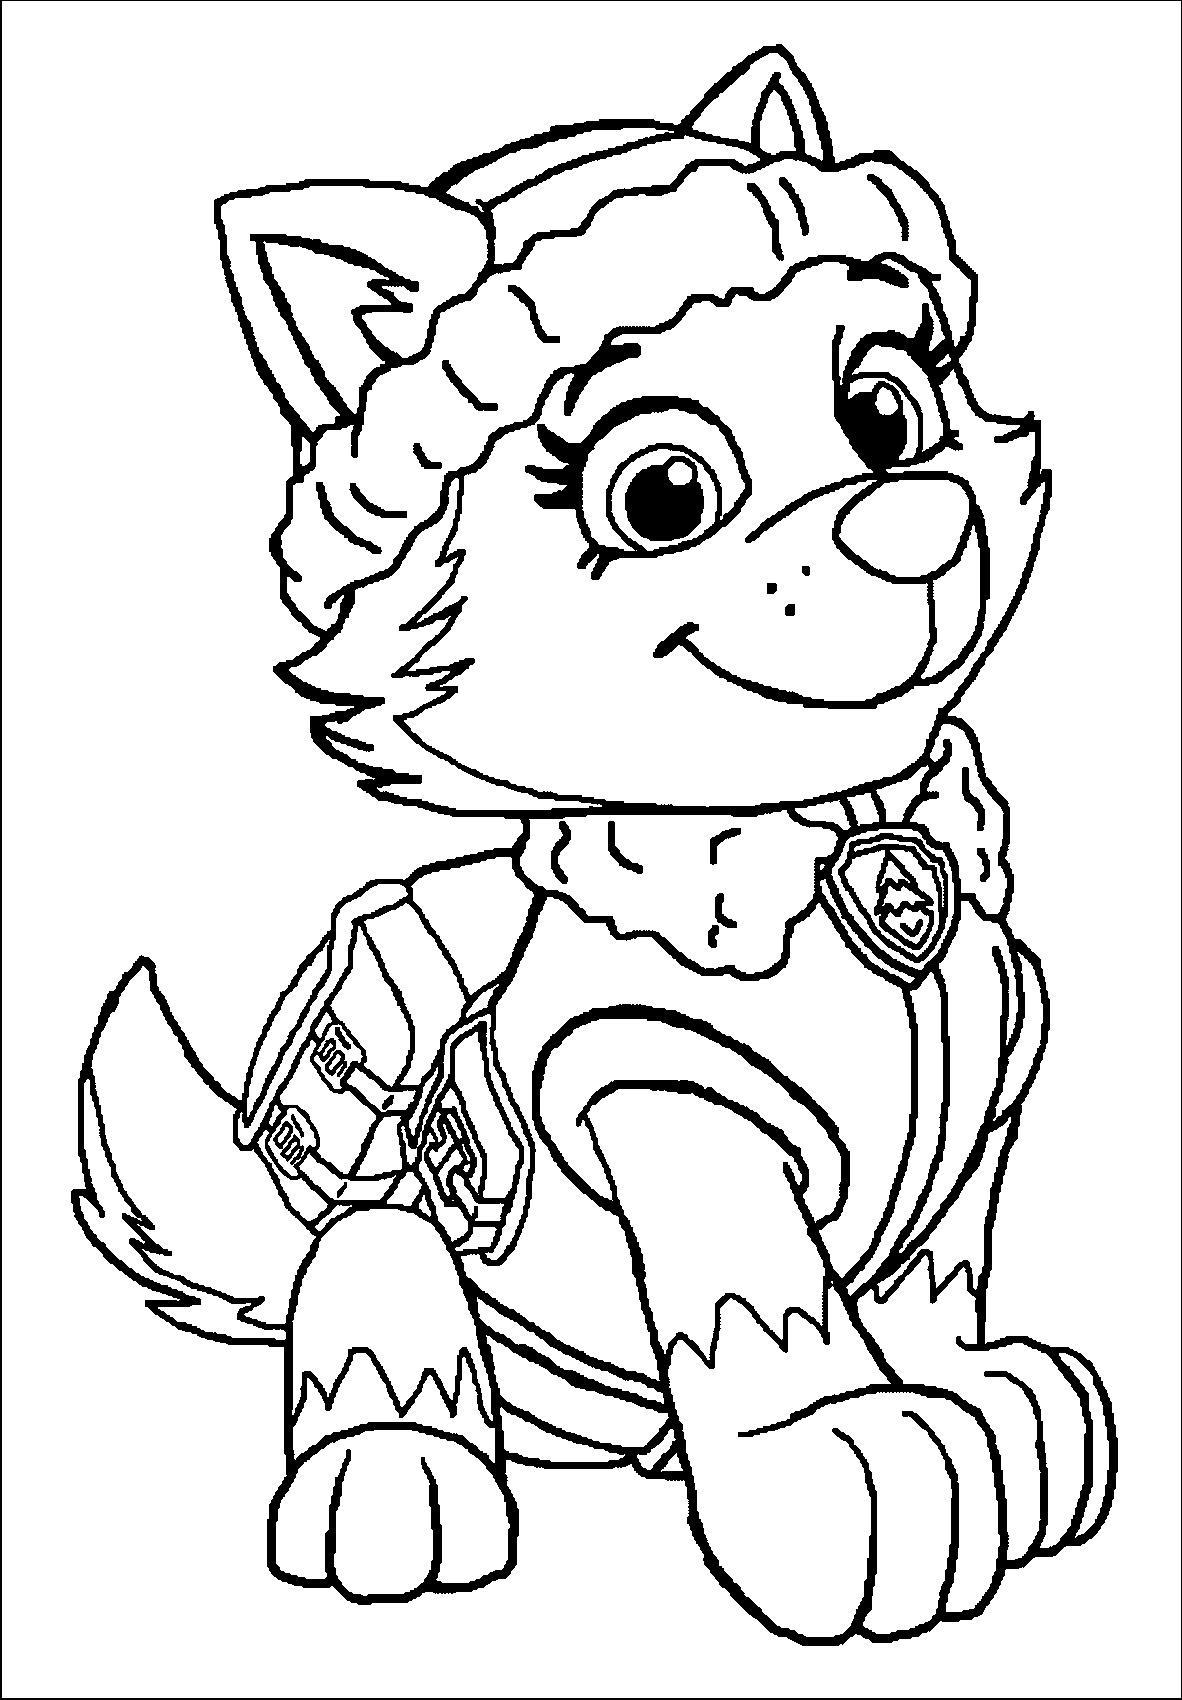 everest paw patrol coloring how to draw everest a female character from paw patrol everest coloring patrol paw